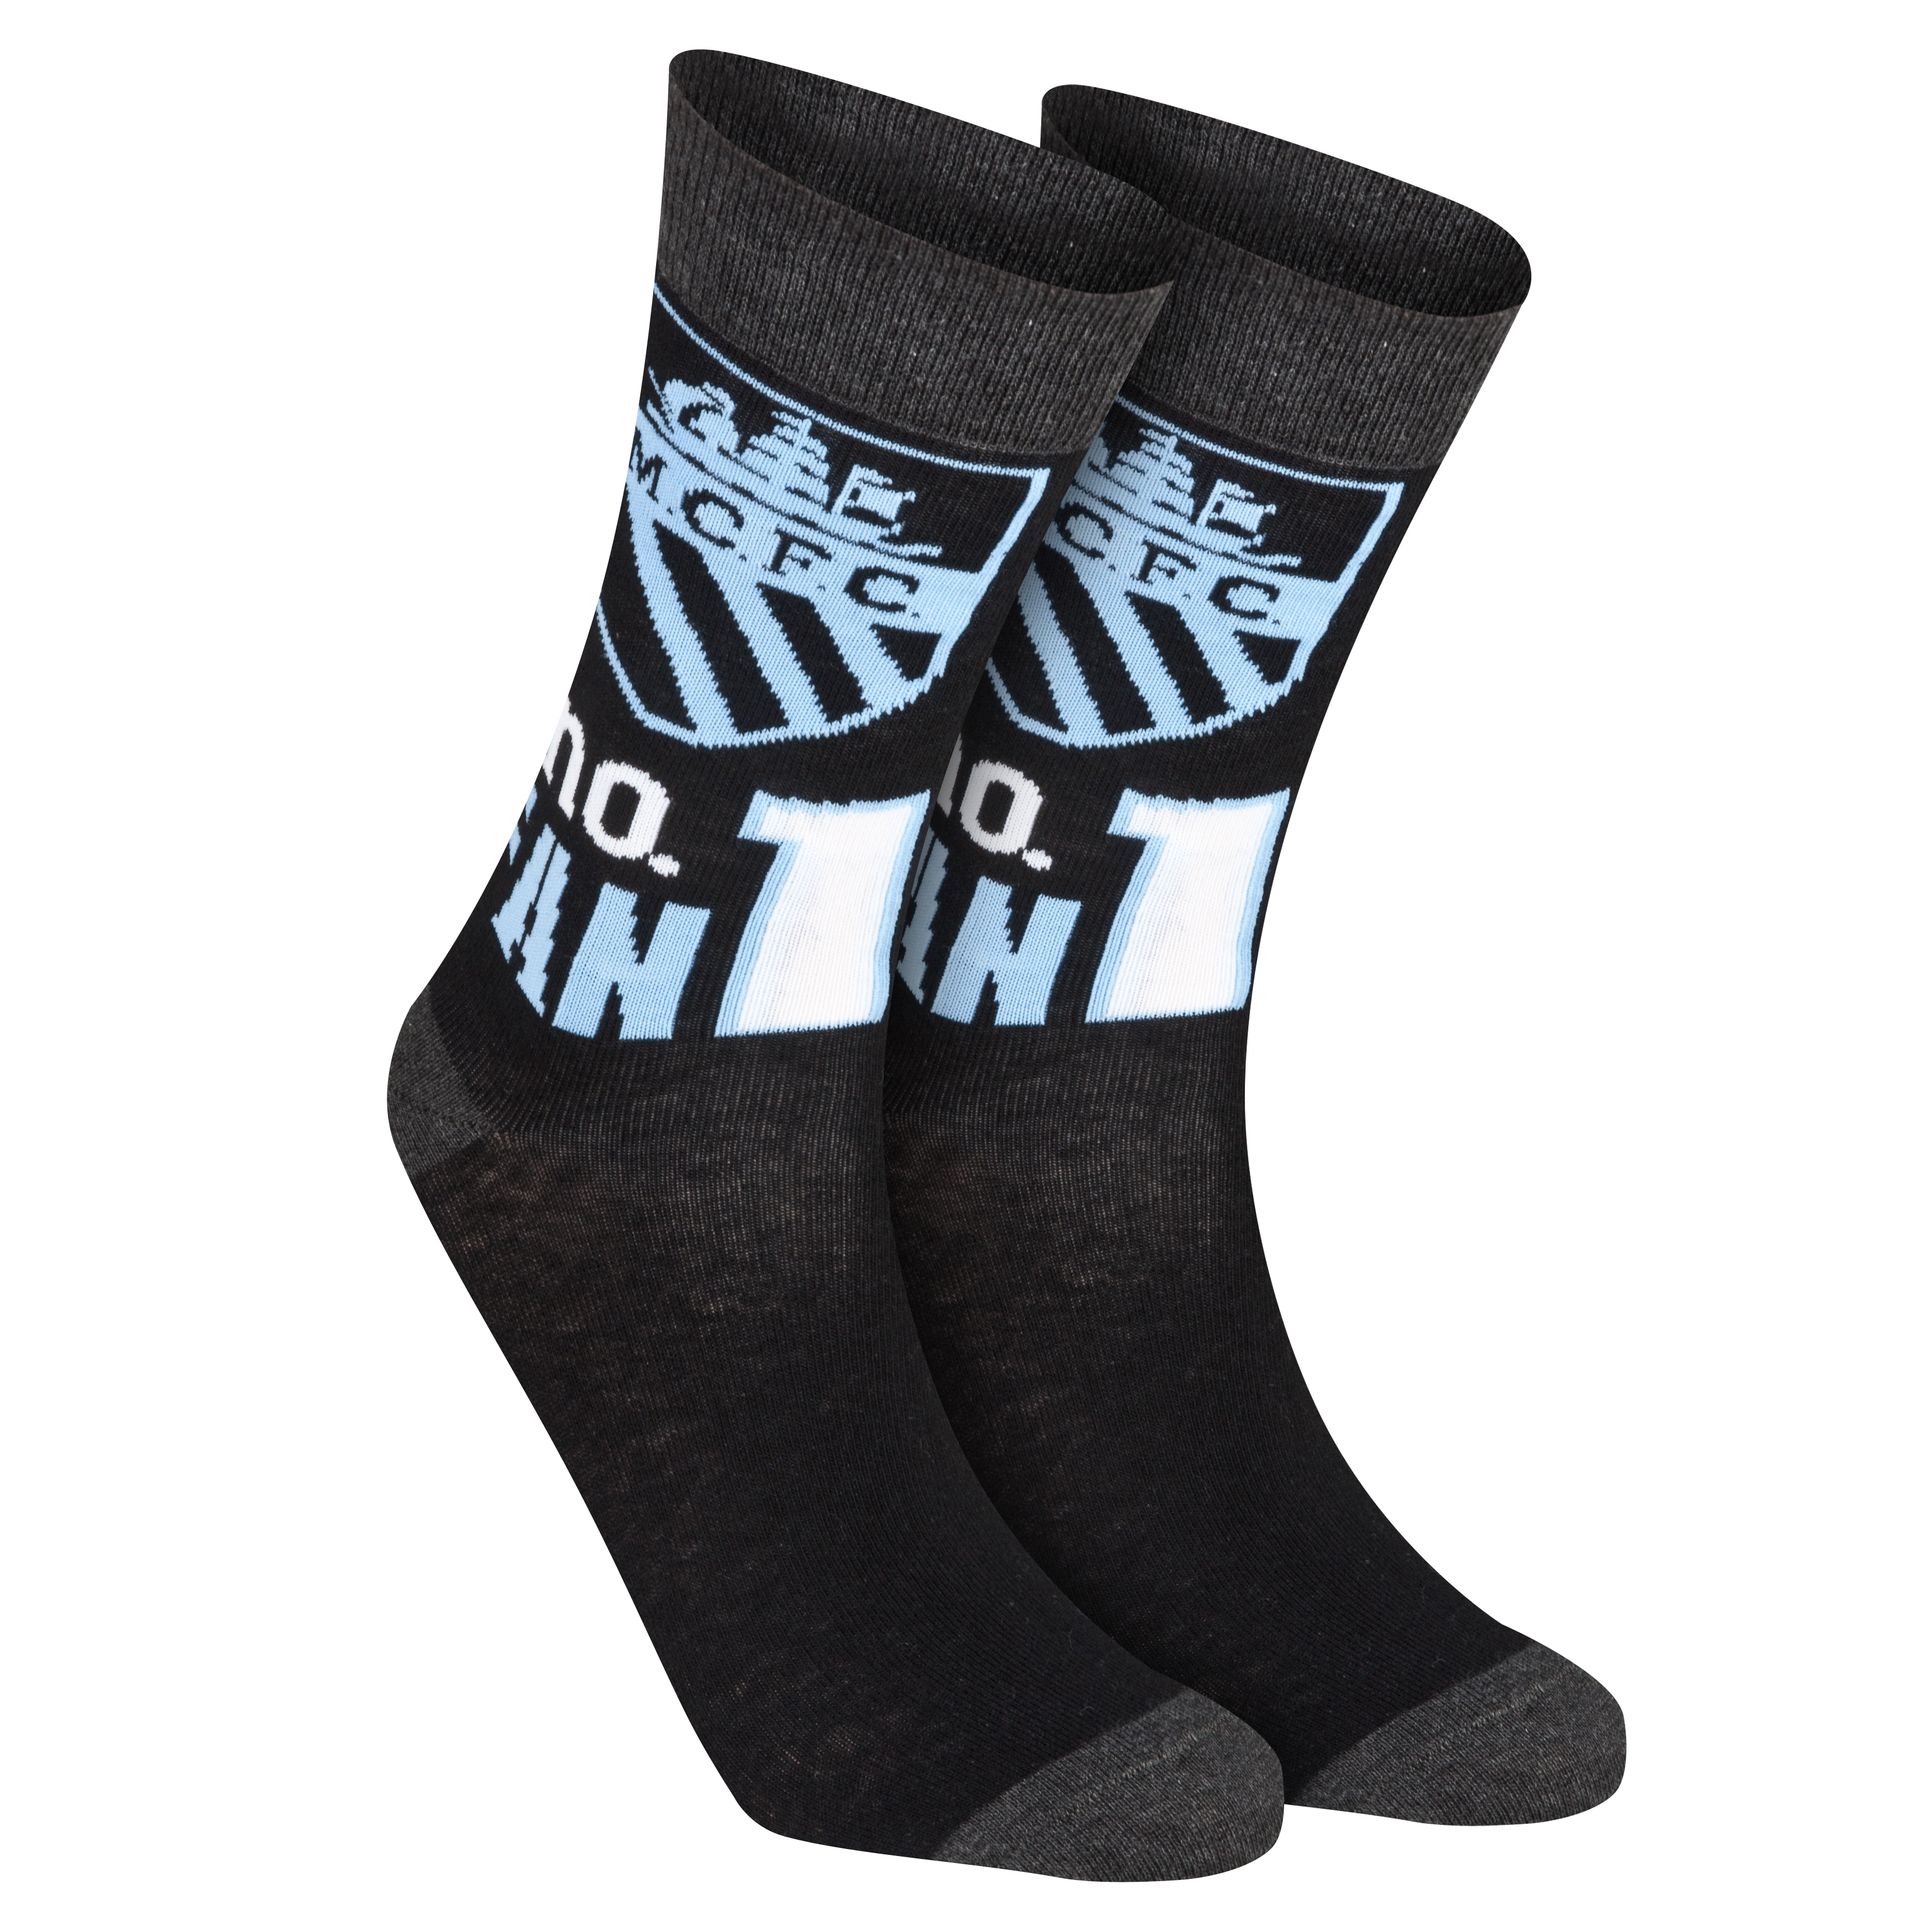 Manchester City Number 1 Fan Socks - Black/Grey/Sky